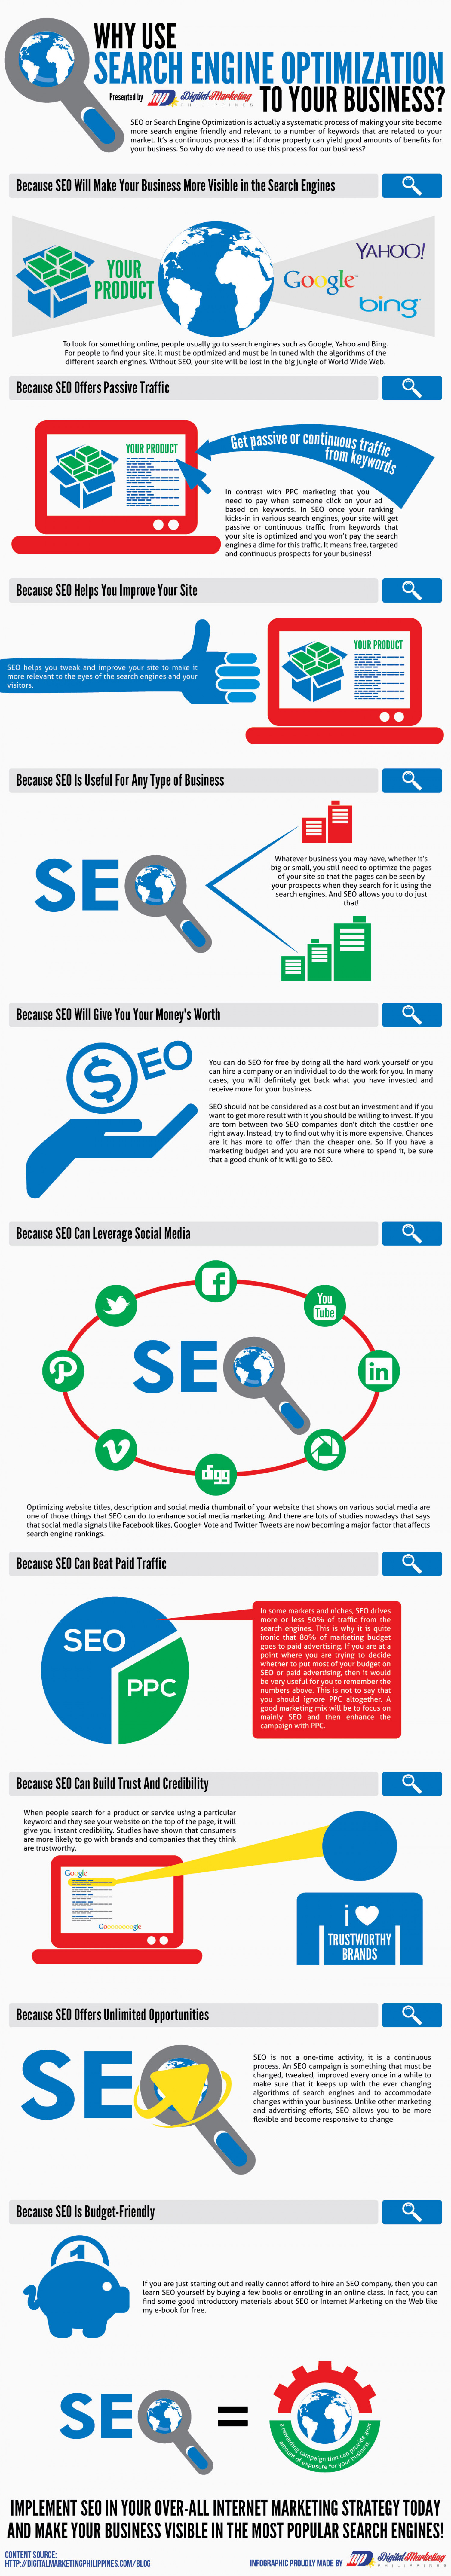 Why Use SEO to Your Business? Infographic